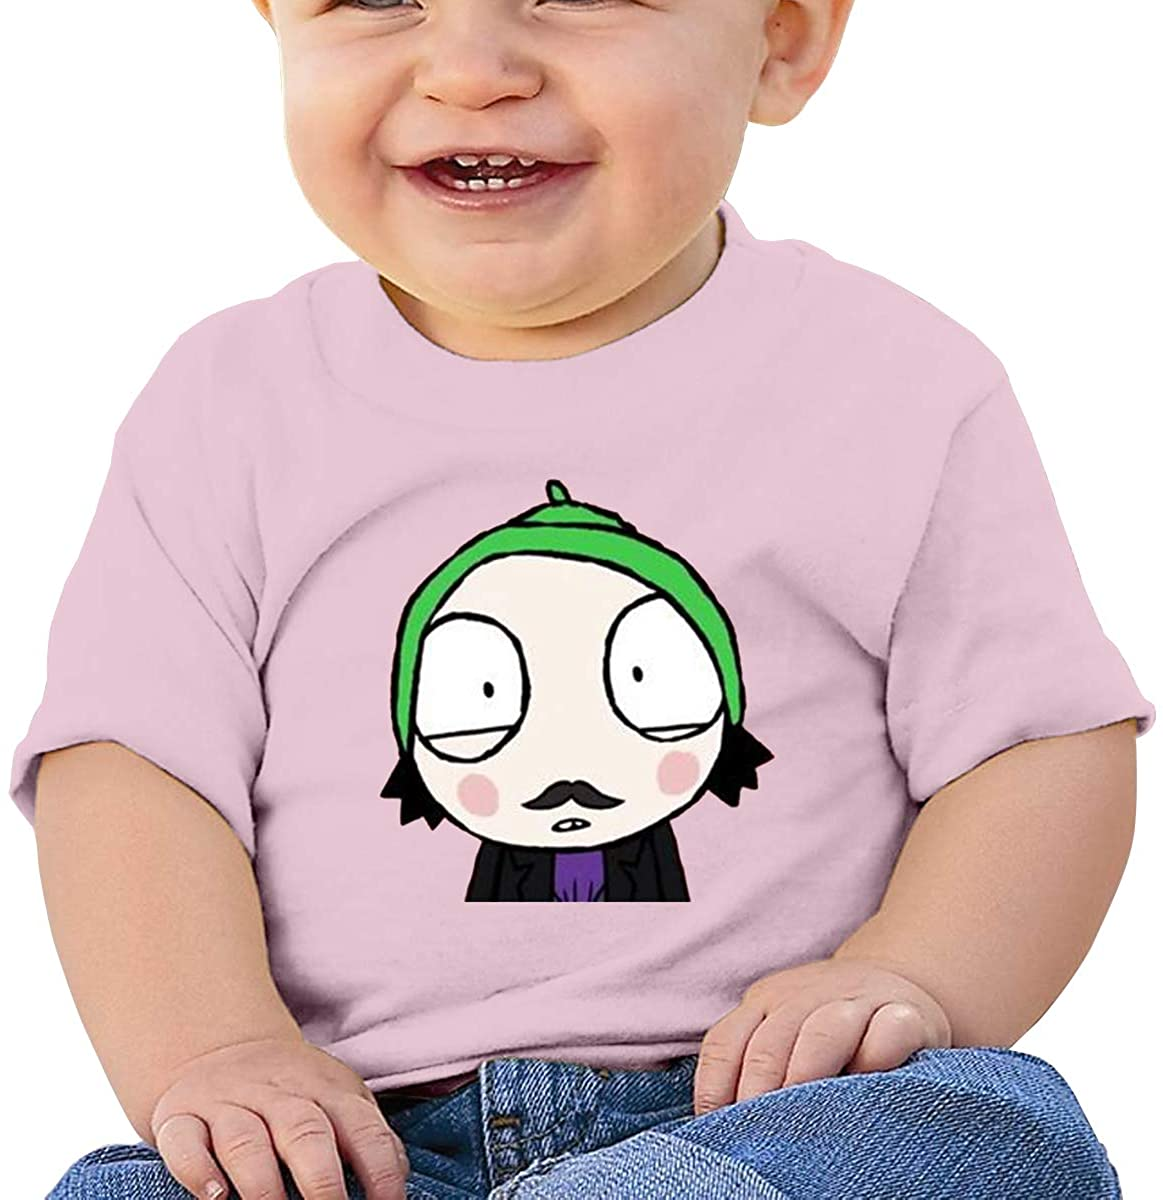 6-24 Months Boy and Girl Baby Short Sleeve T-Shirt Sarah & Duck Logo Original Minimalist Style Pink